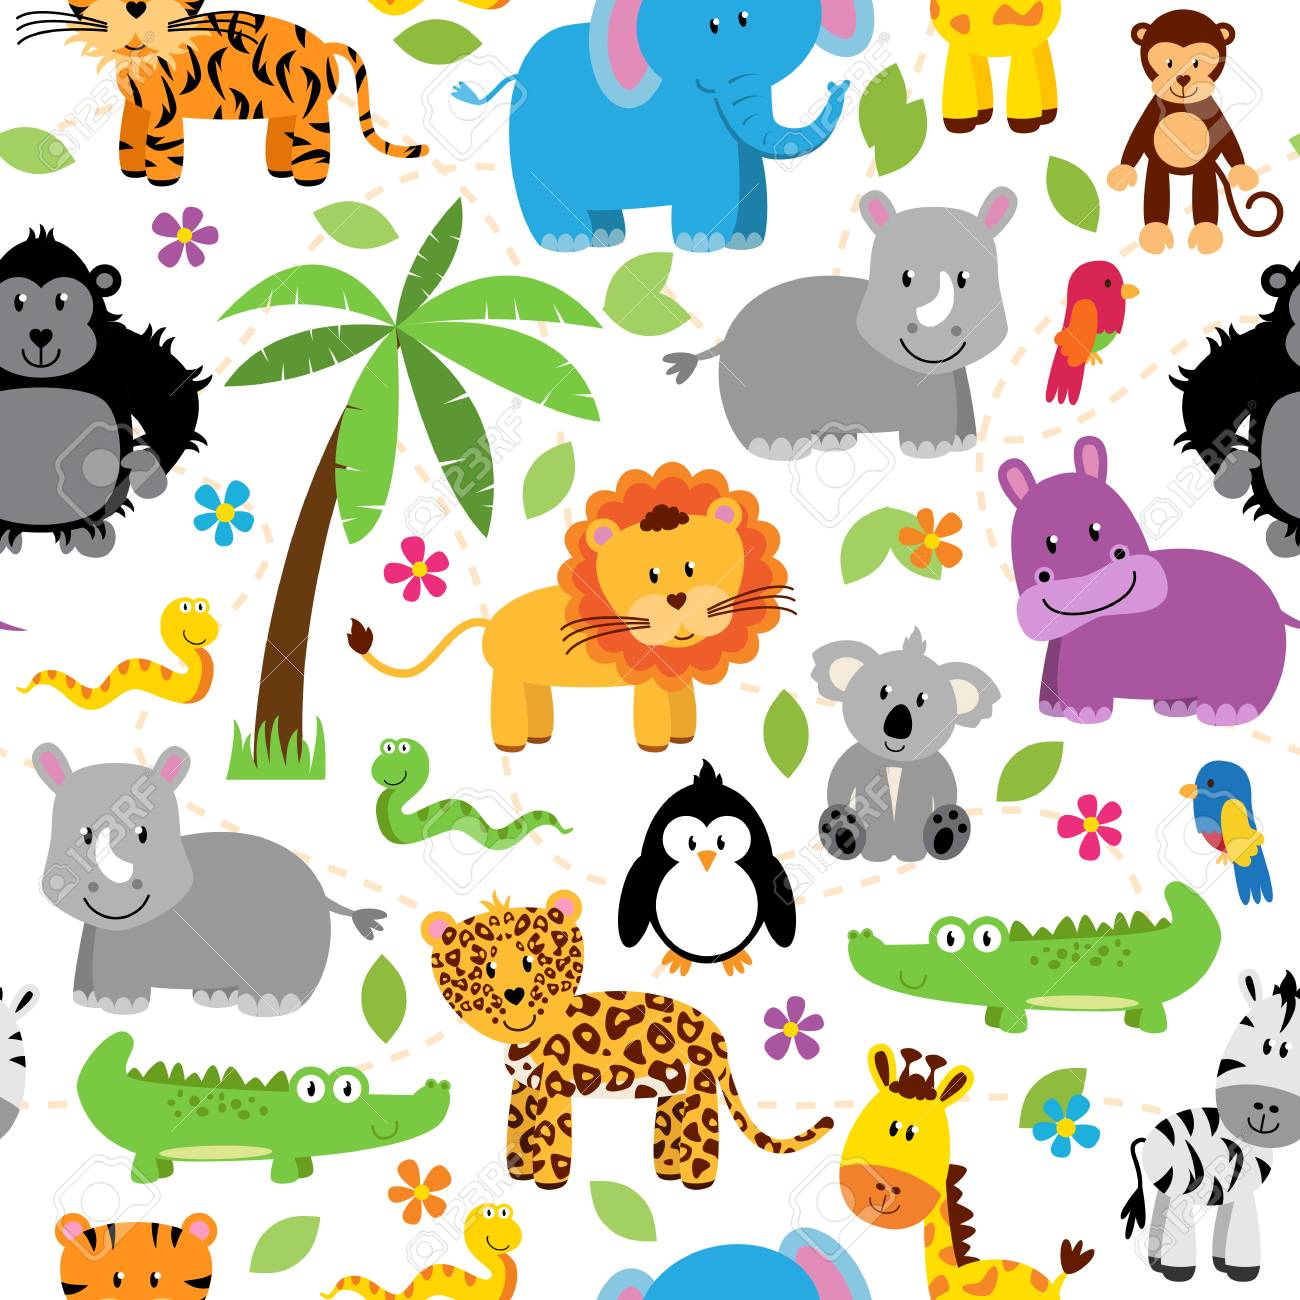 Seamless, Tileable Jungle or Zoo Animal Themed Background Patterns - 40619389